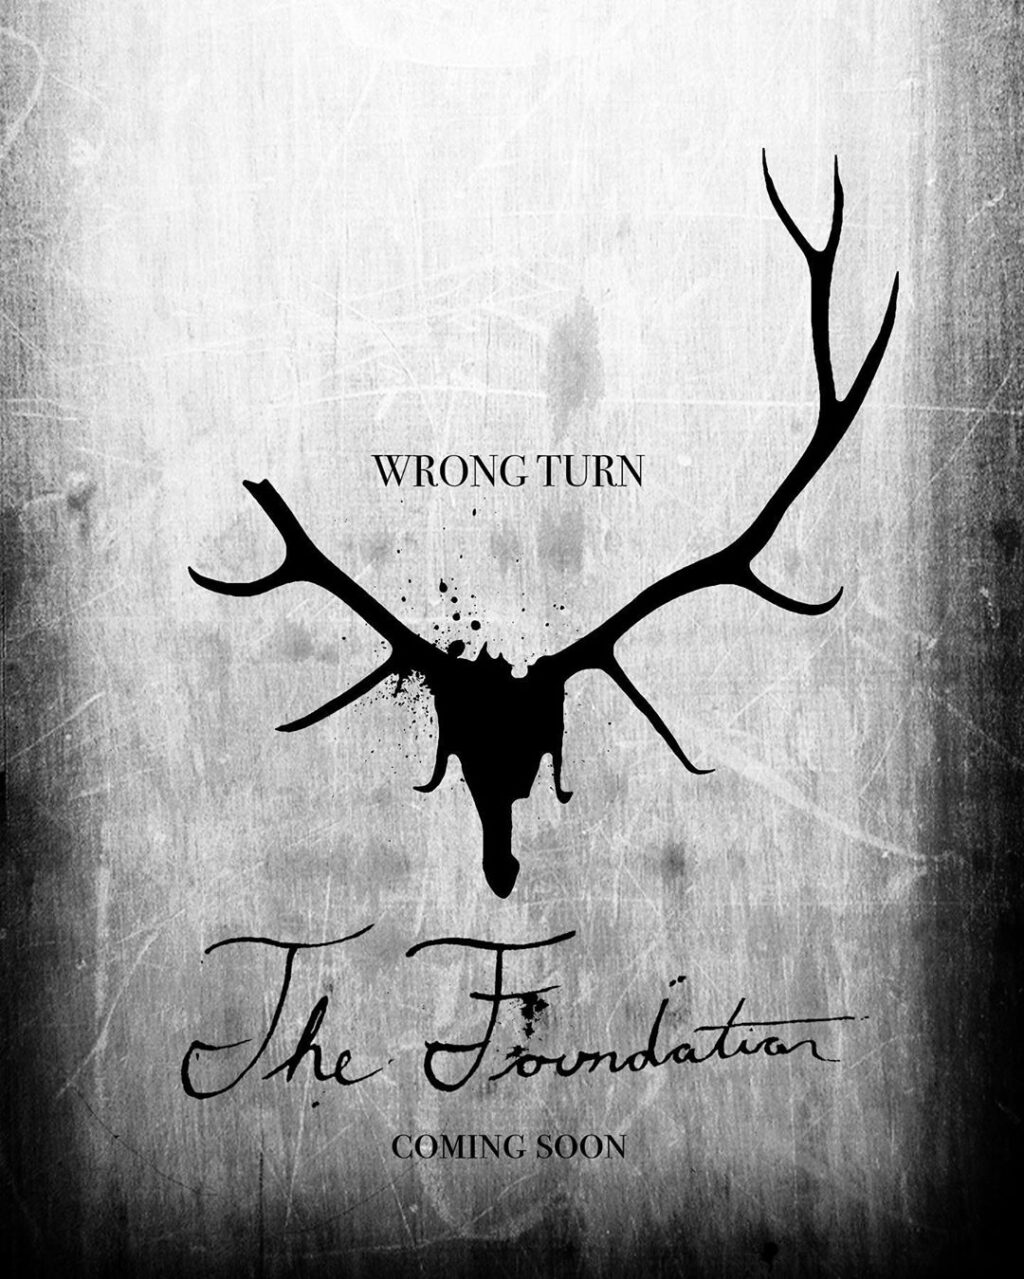 Wrong Turn The Foundation poster 1024x1279 - WRONG TURN Reboot Poster Reveals New Title